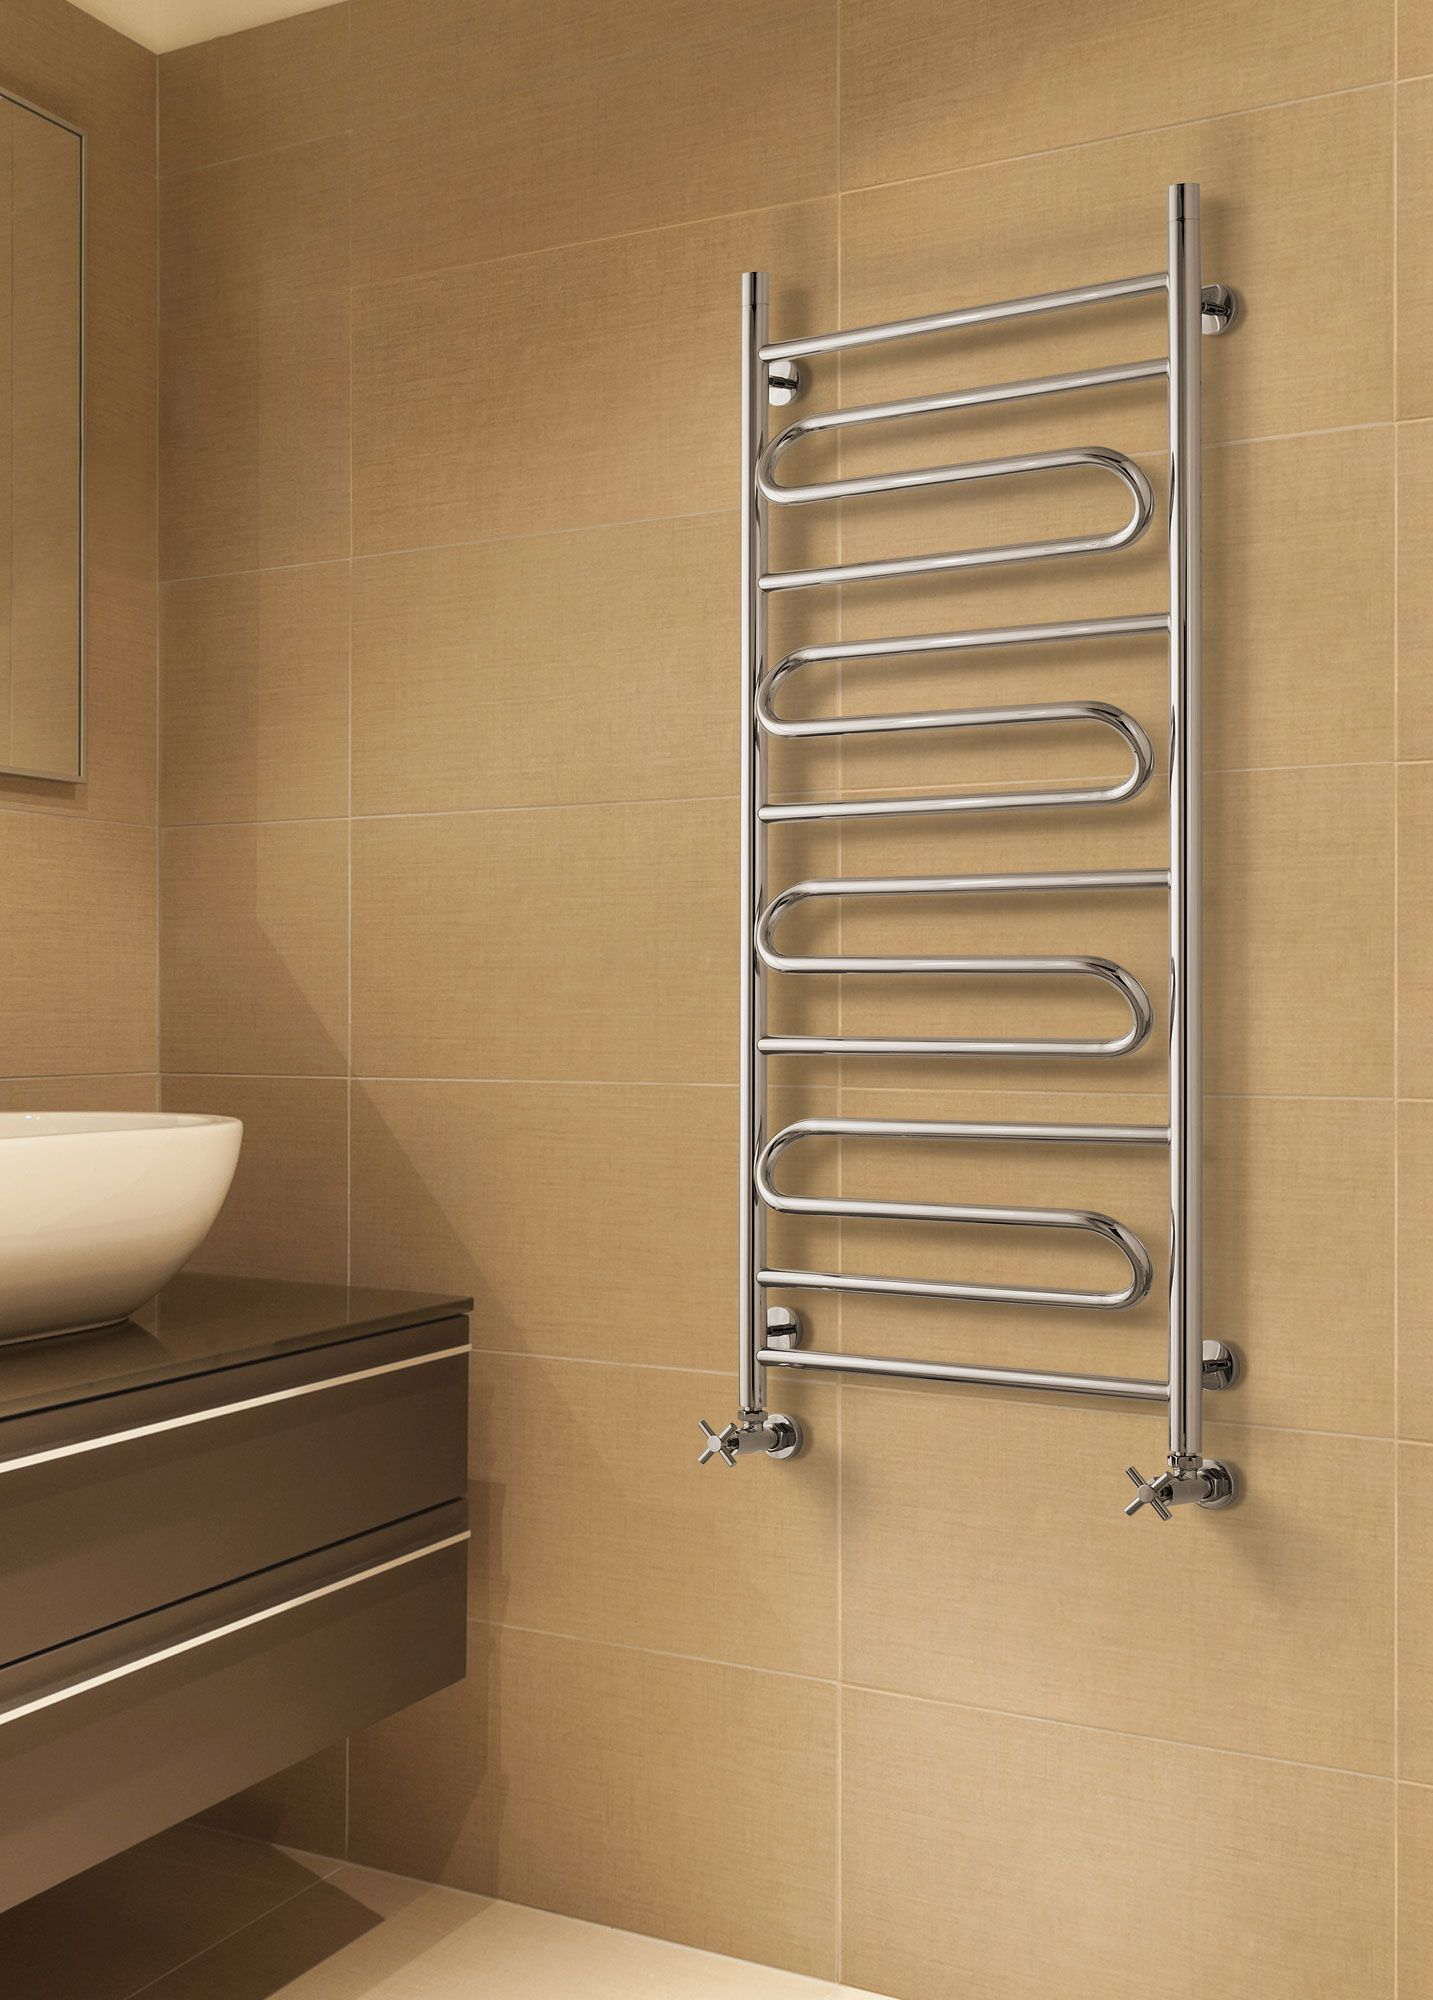 Introducing The Sunerzha Elegy Stainless Steel Heated Towel Rail Manufactured From Grade 304 Stainless Steel Dual Fuel Heating Options Available As An Op Miedz